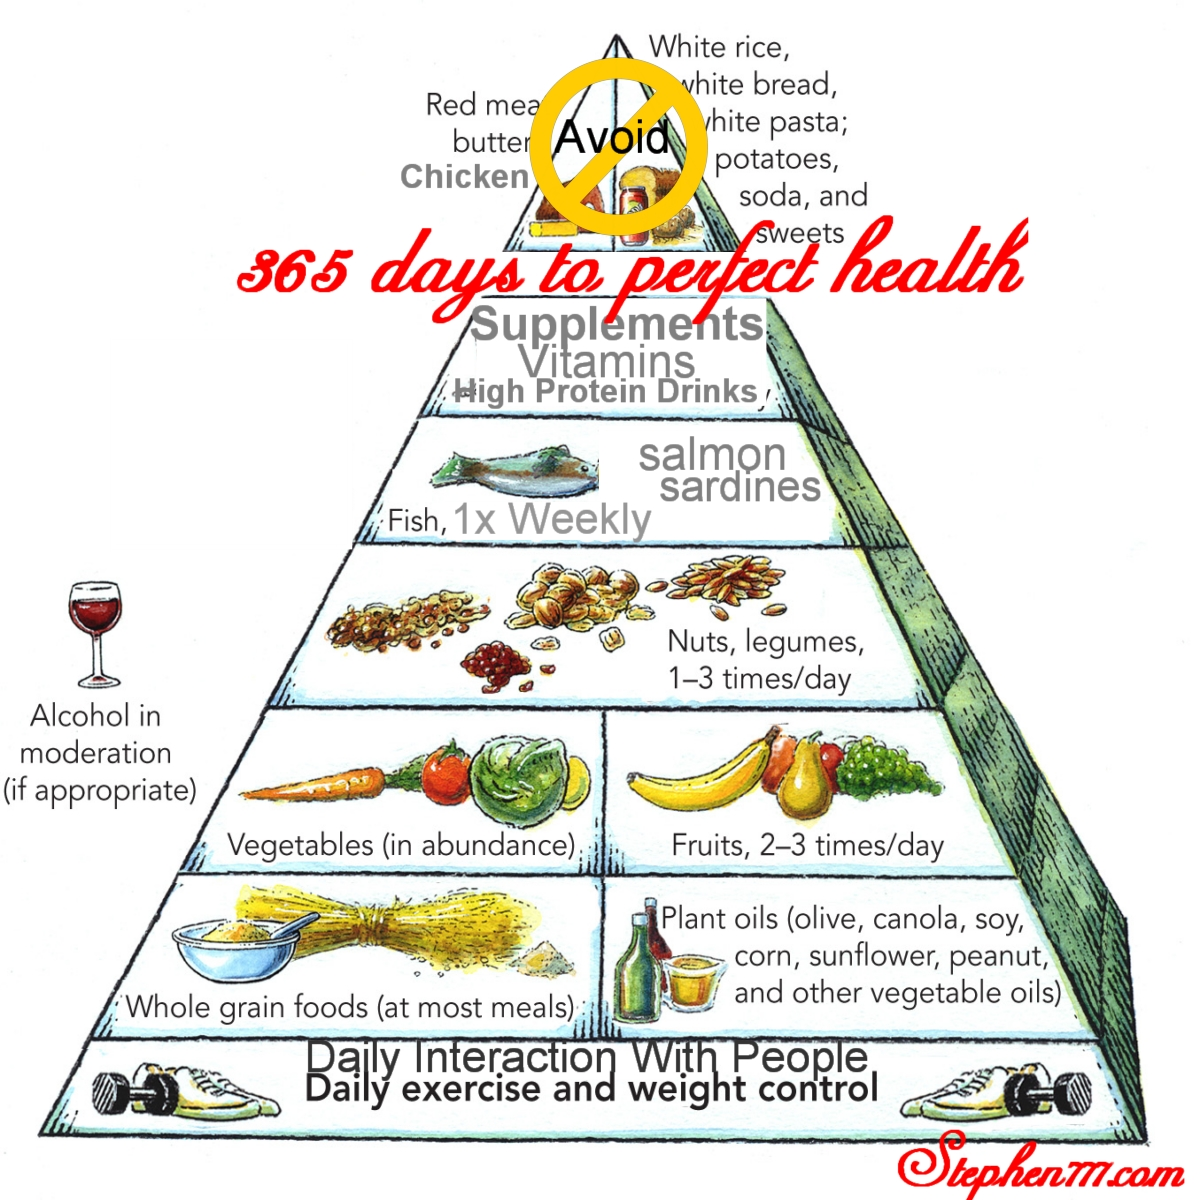 Food pyramid for steves 365 days to ending heart disease diet